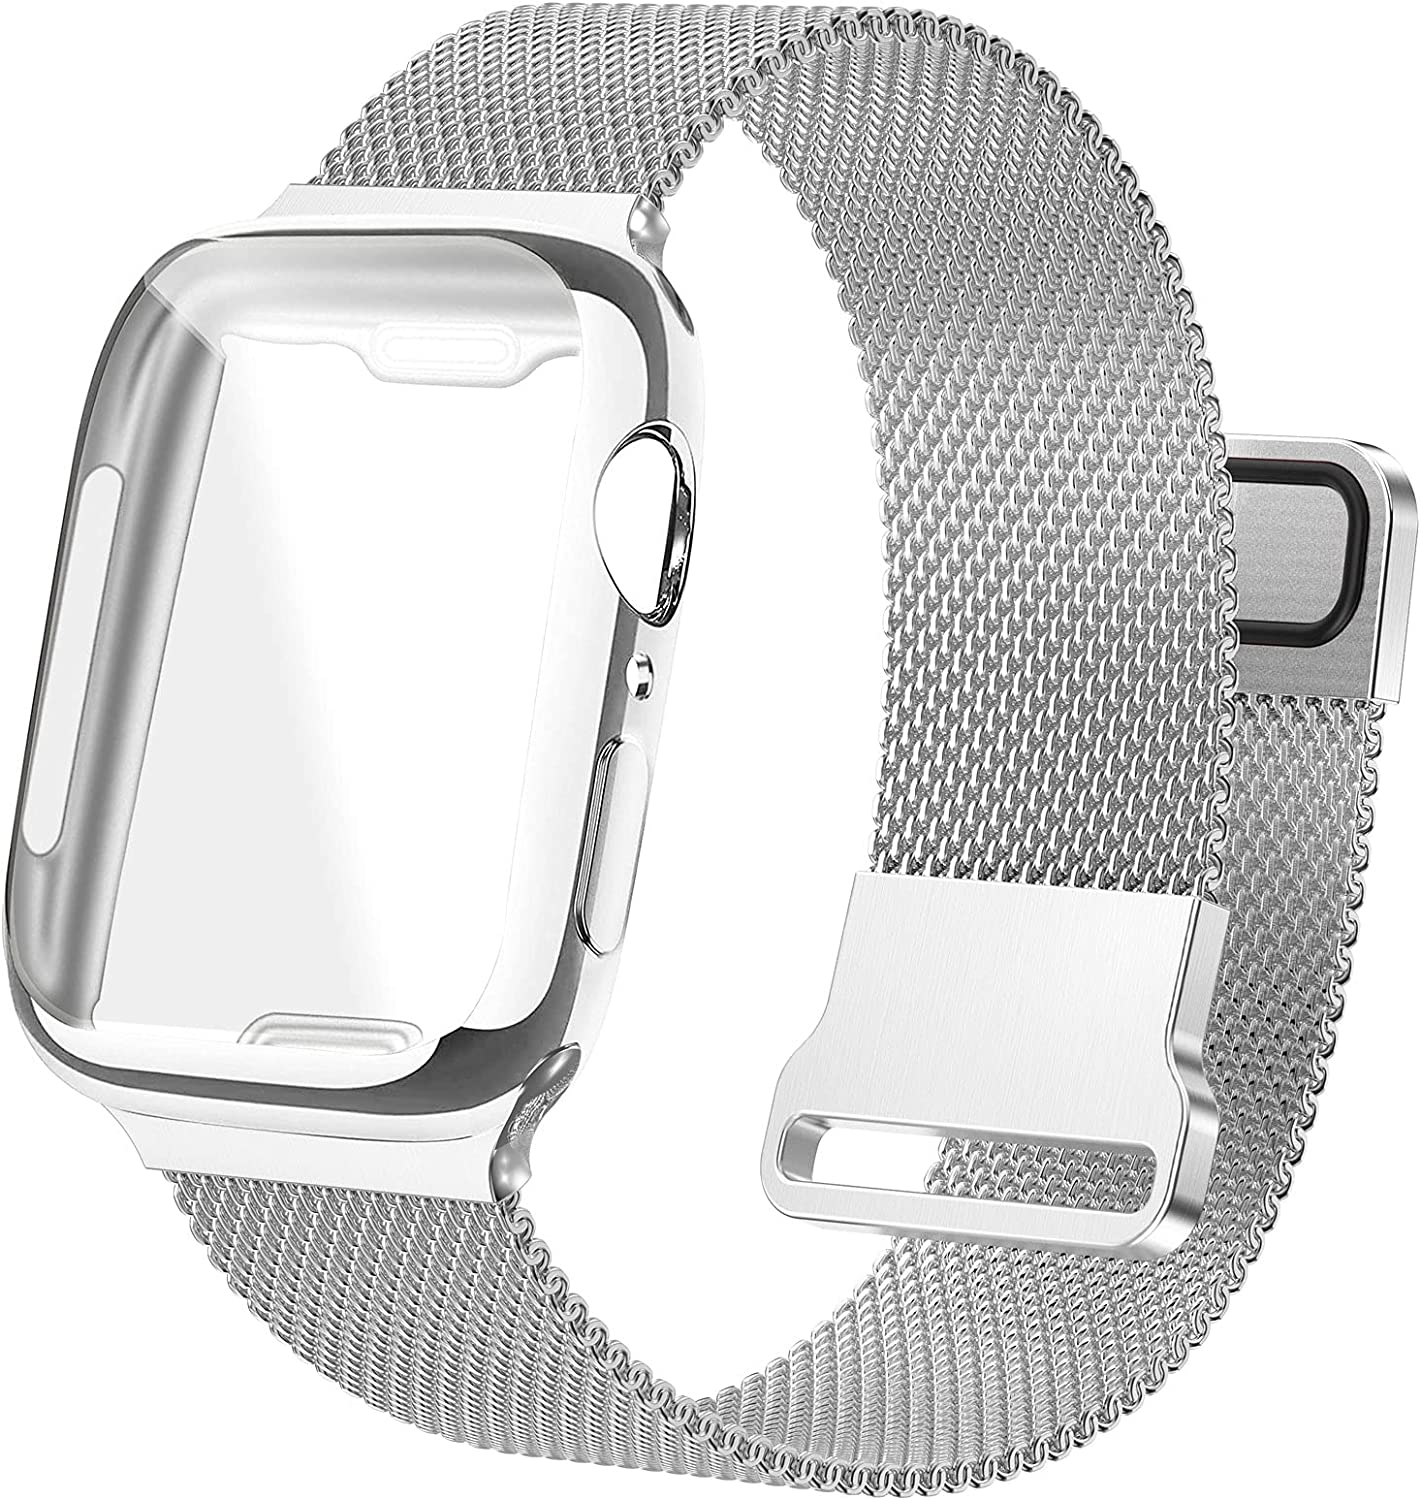 Bifeiyo Stainless Steel Band with Case Compatible with Apple Watch Bands 42mm for Women Men, Adjustable Magnetic Milanese Mesh Metal Strap for iWatch Series 6/5/4/3/2/1 SE [Silver]